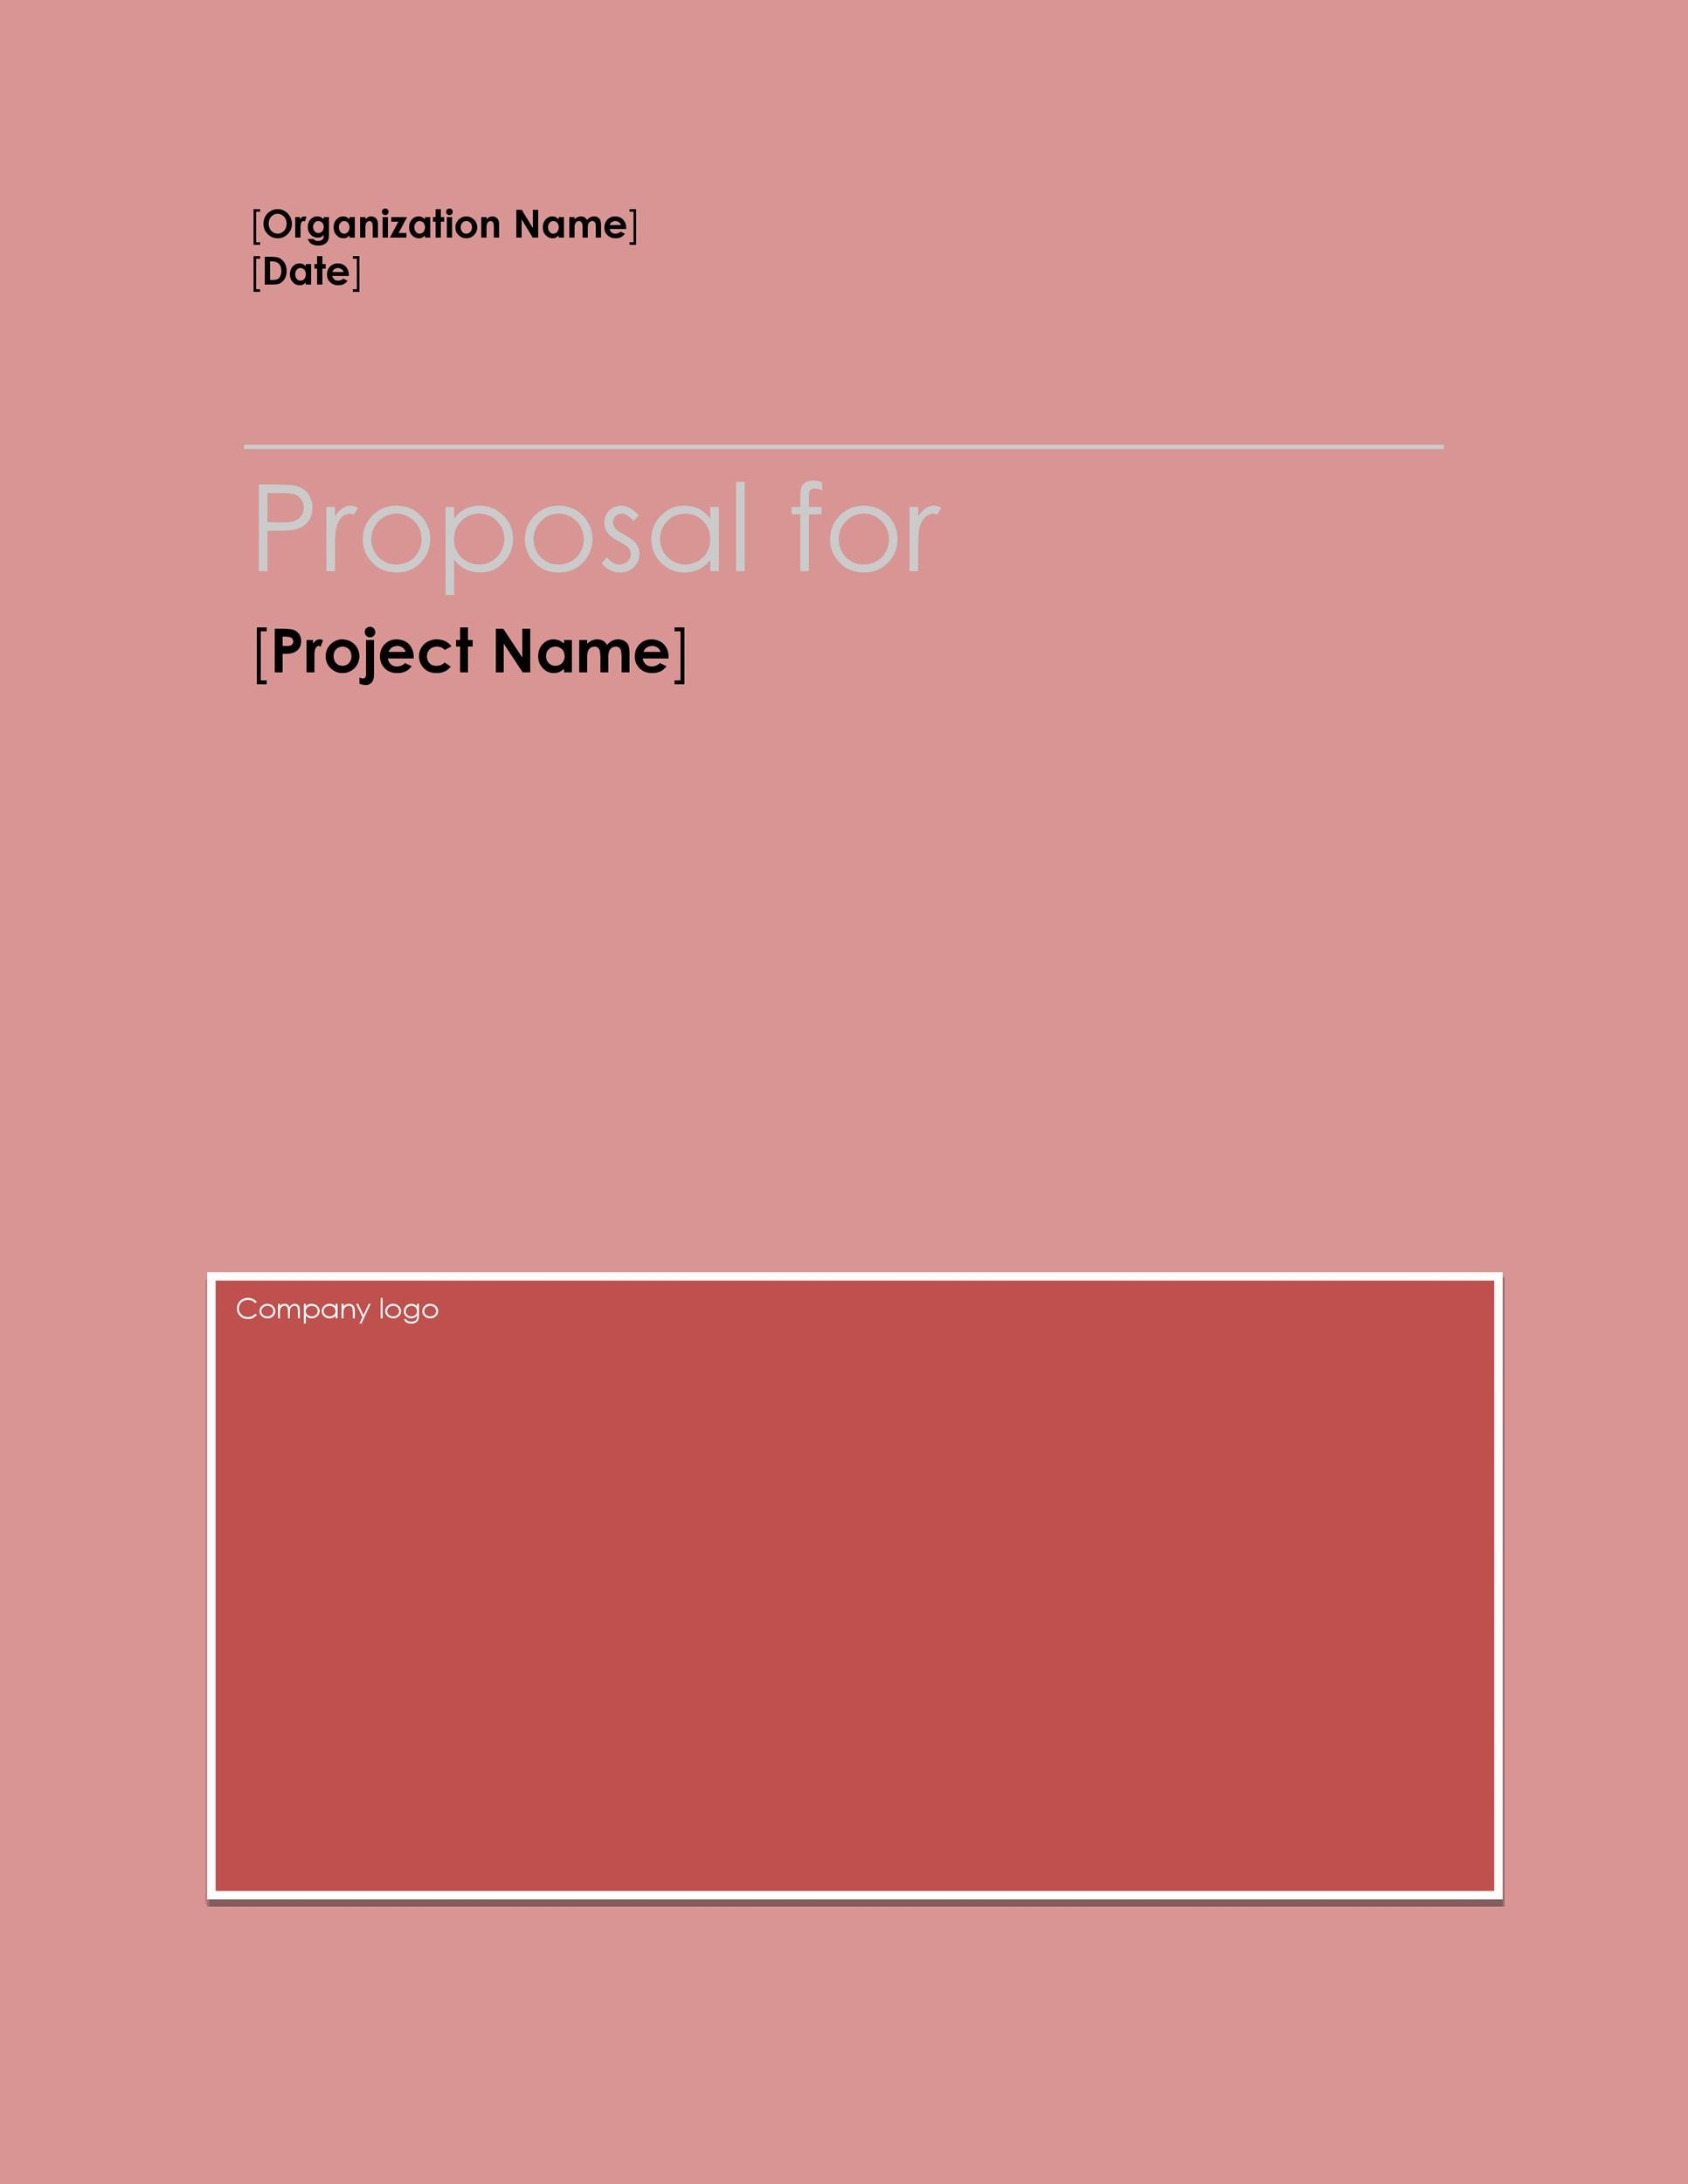 Free Business proposal Template19